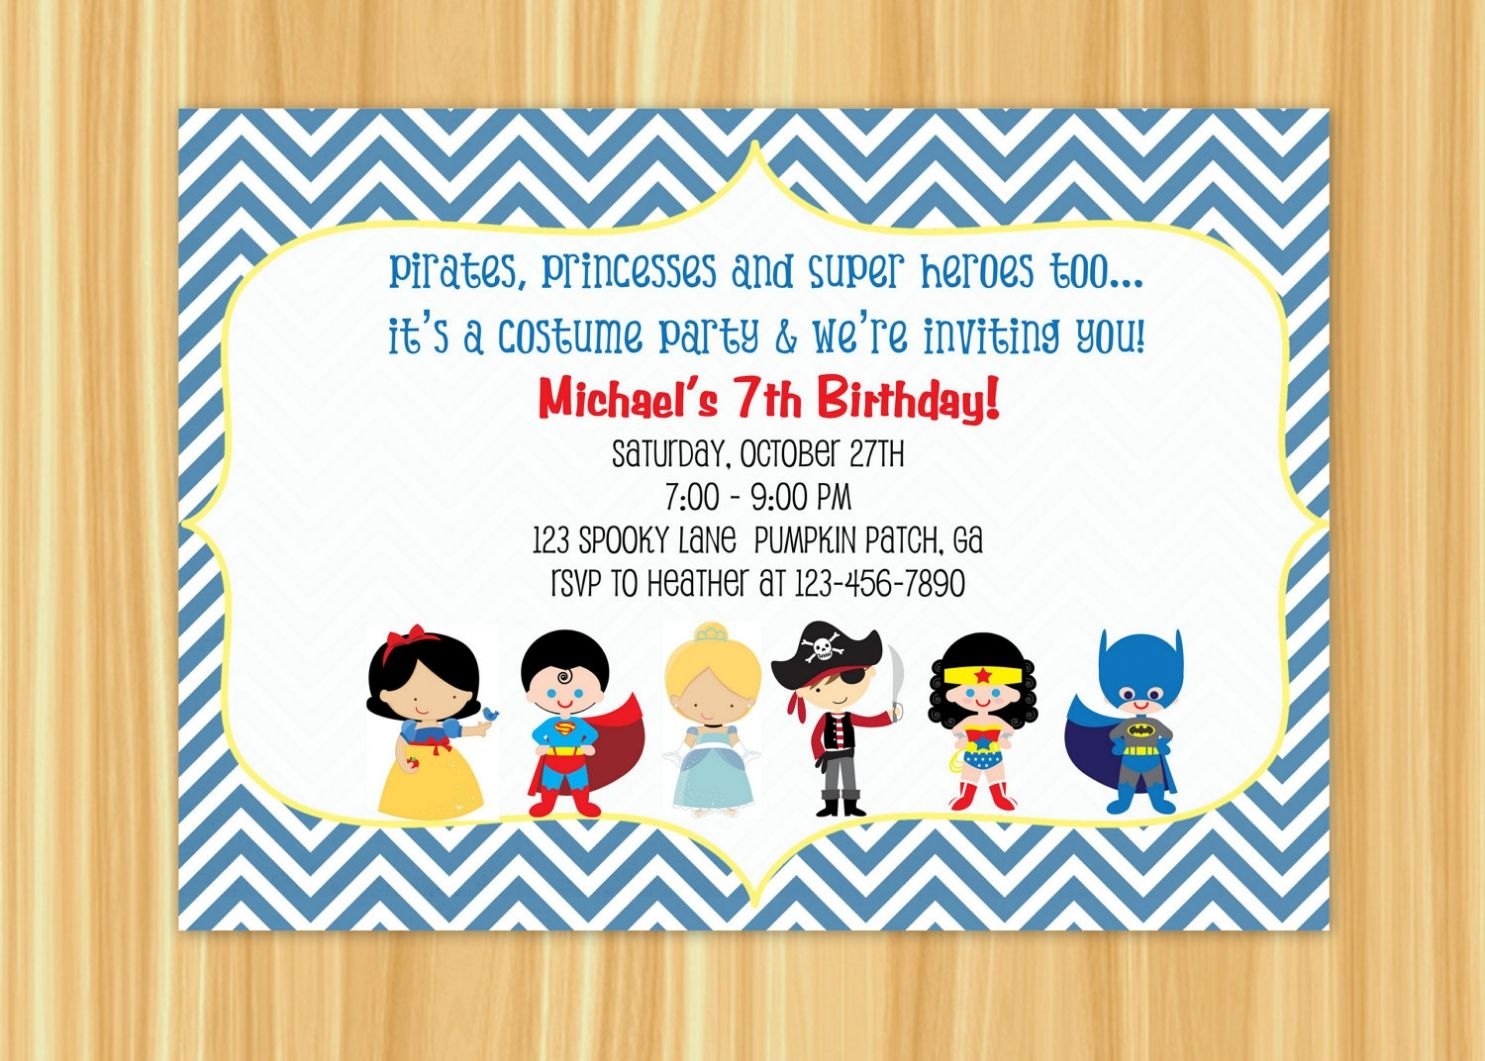 Costume Party Invitations To Inspire You In Making Awesome Invitation Wording 469